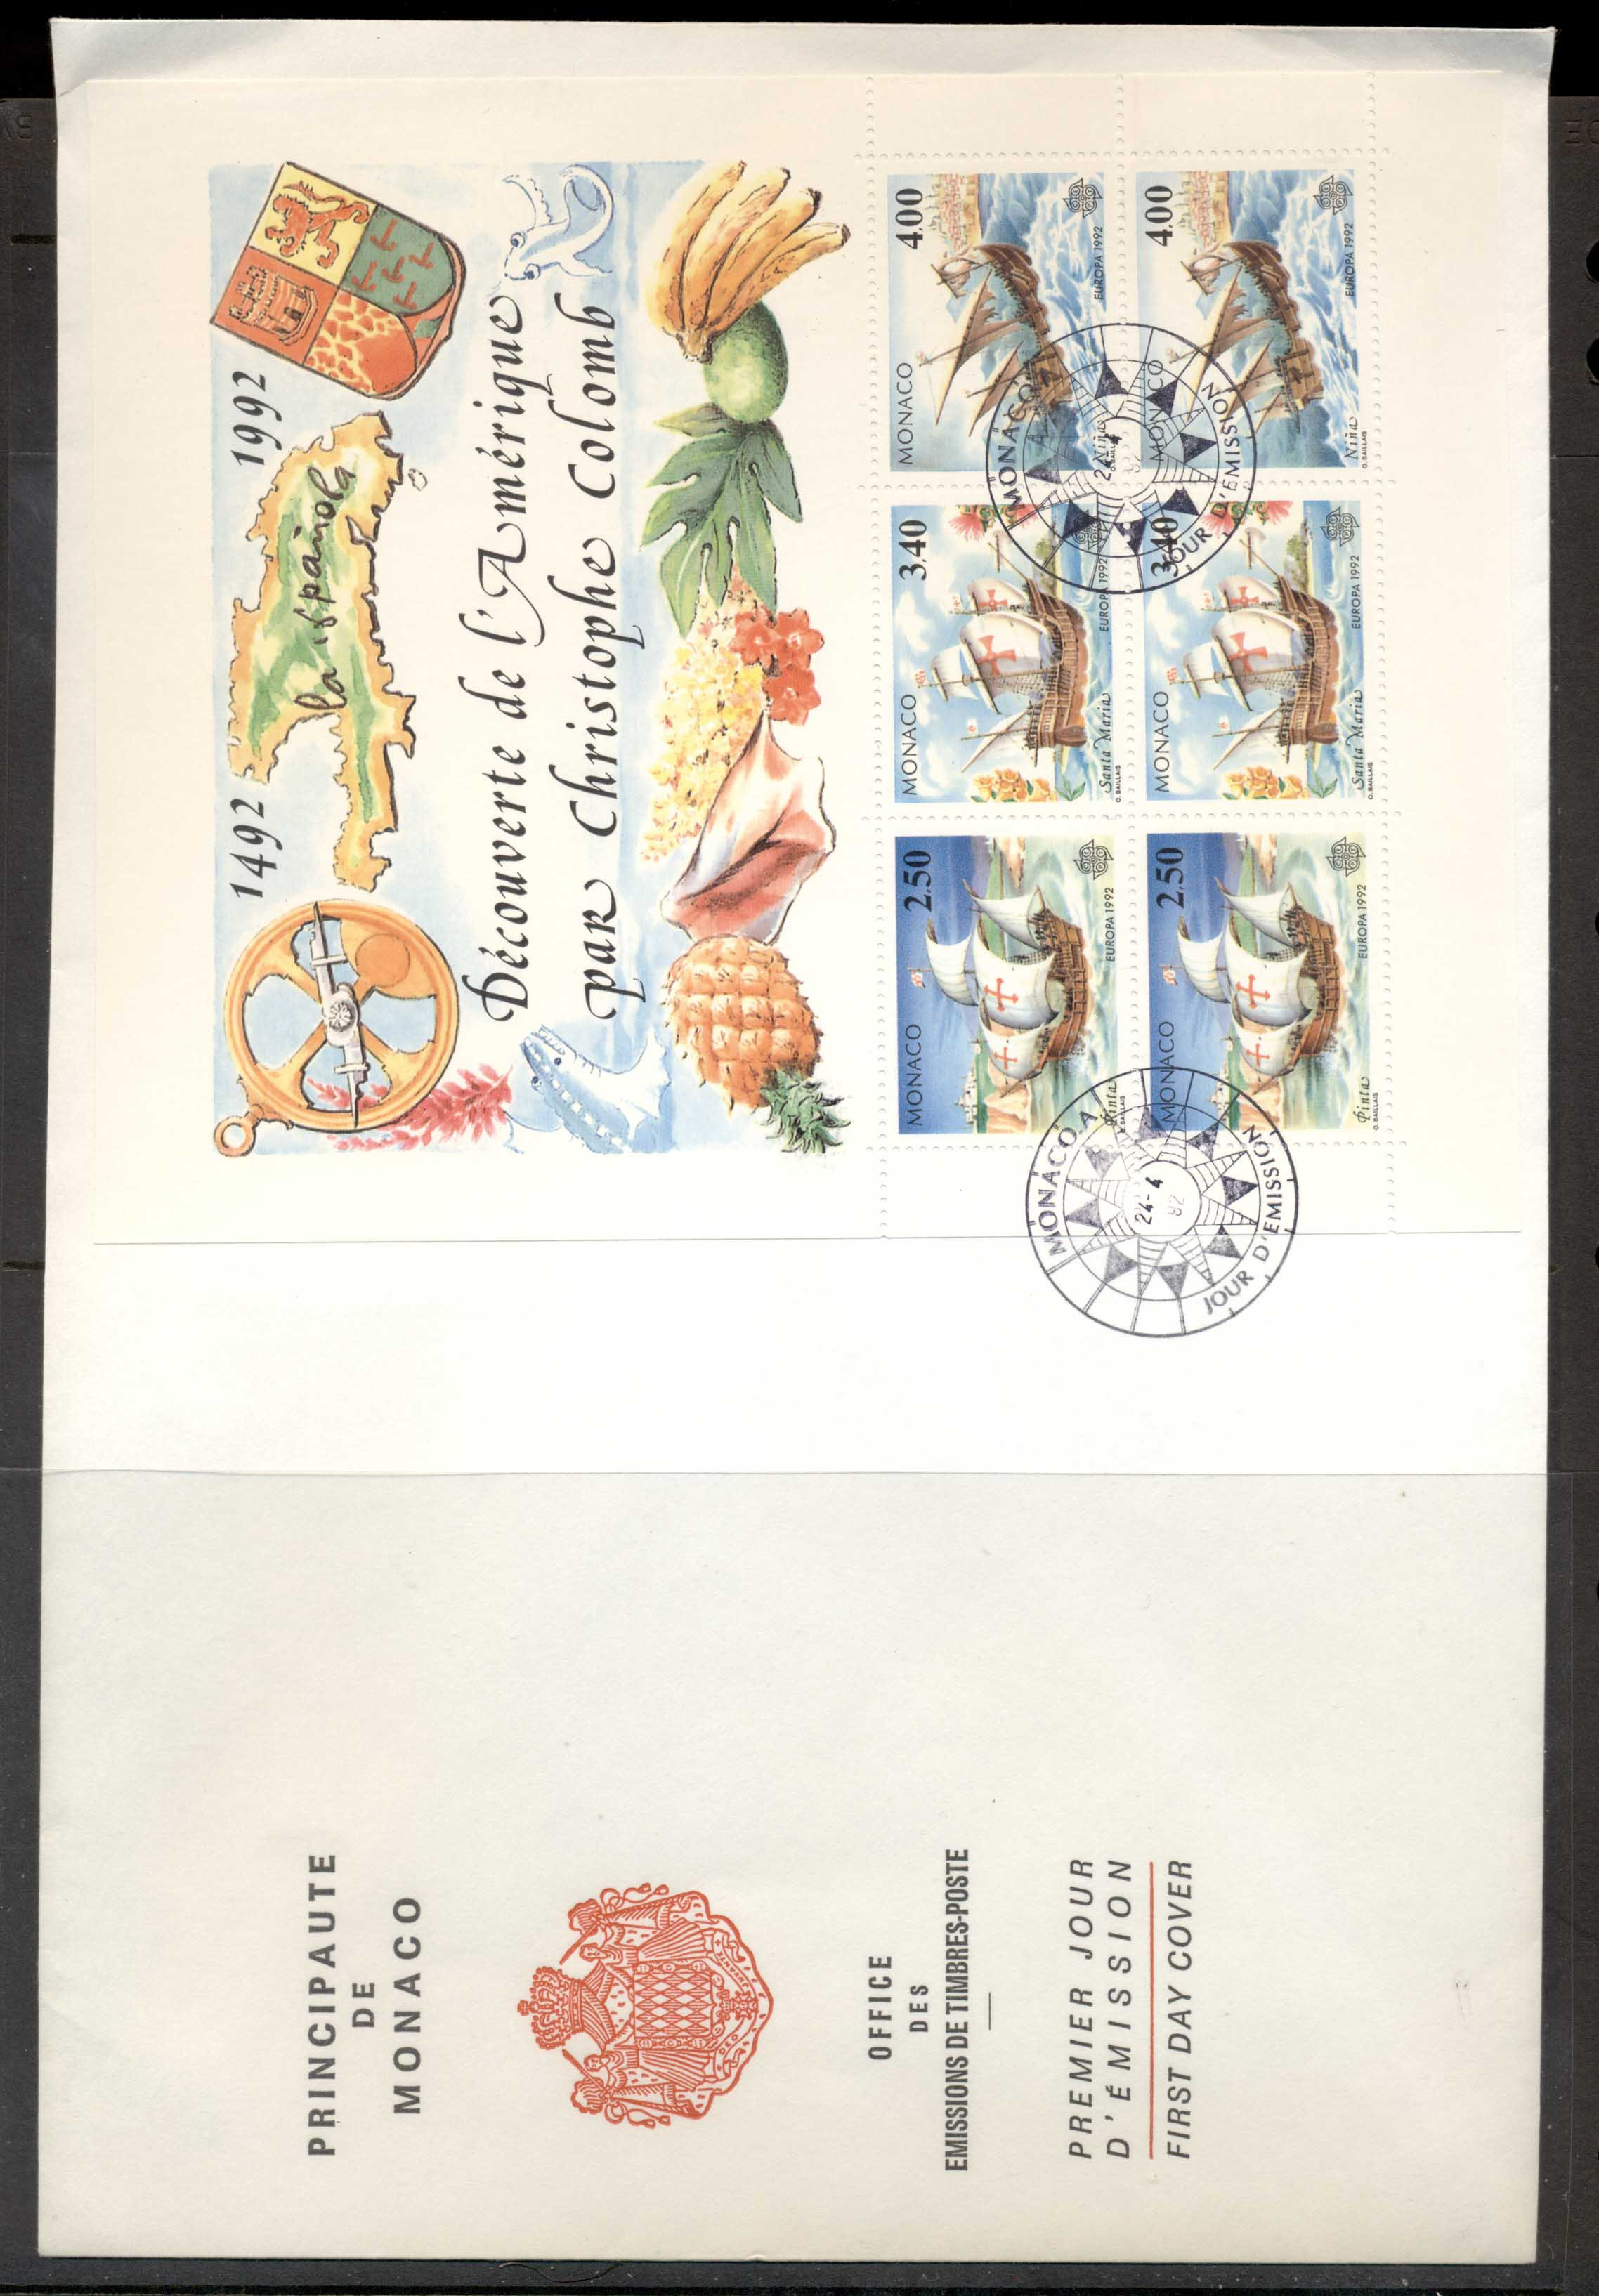 Monaco 1992 Europa Columbus Discovery of America XLMS FDC